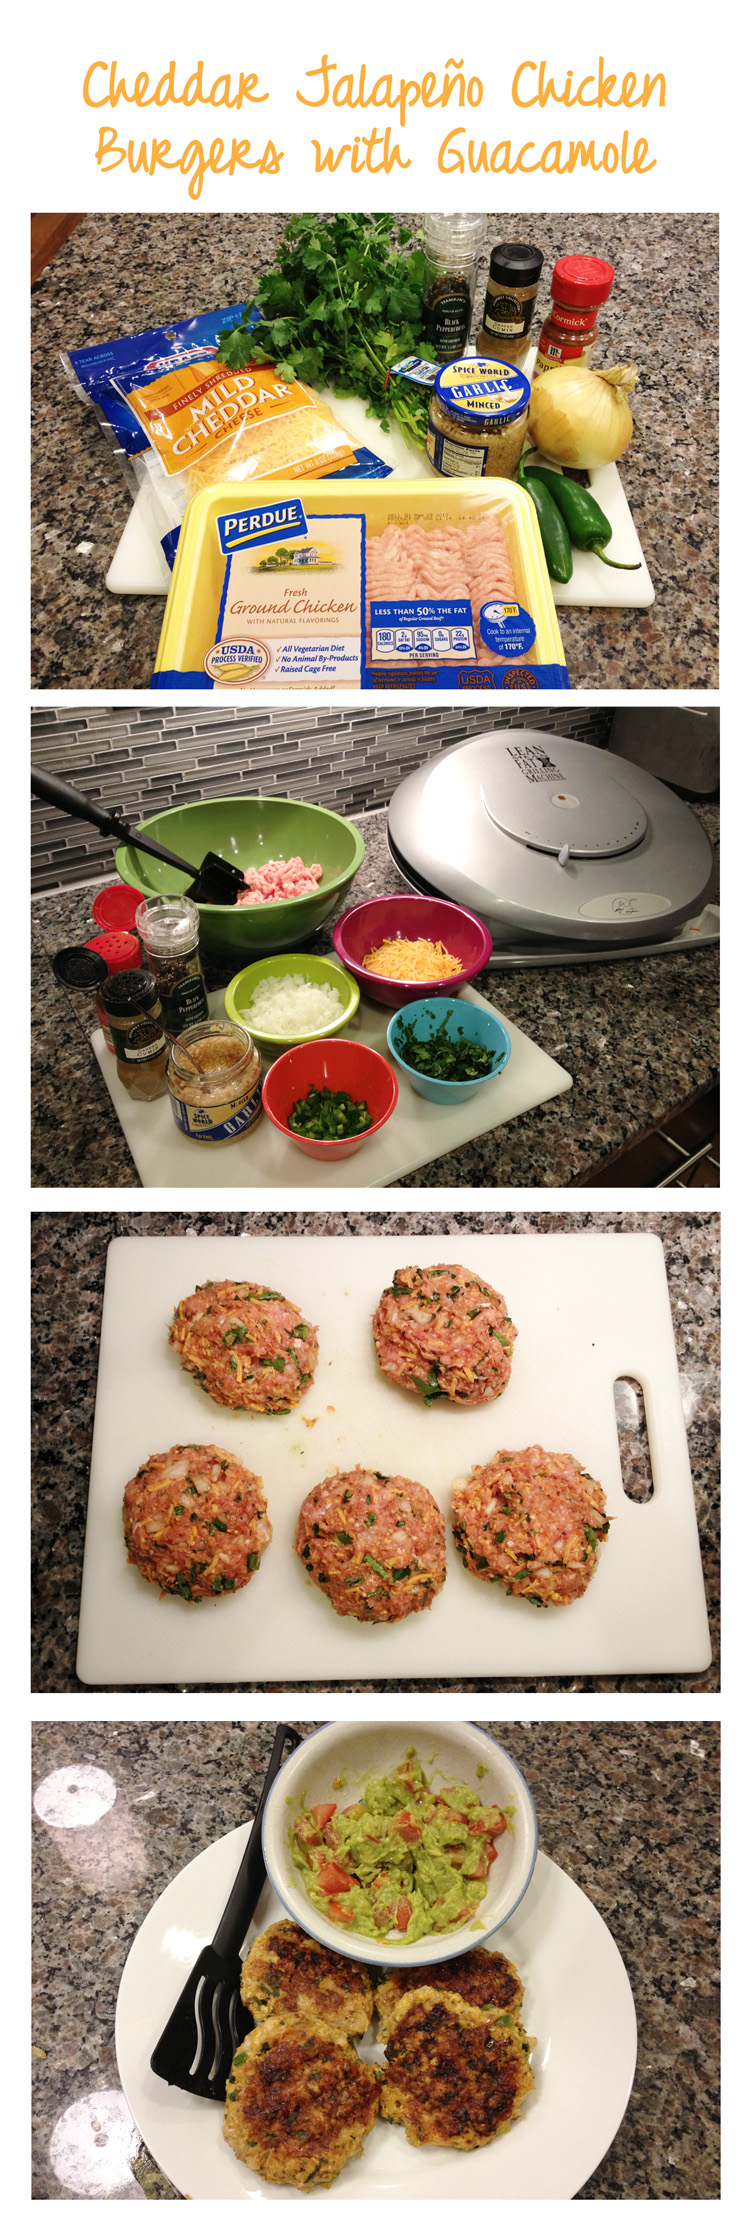 Cheddar Jalapeno Chicken Burgers With Guacamole Recipe ...